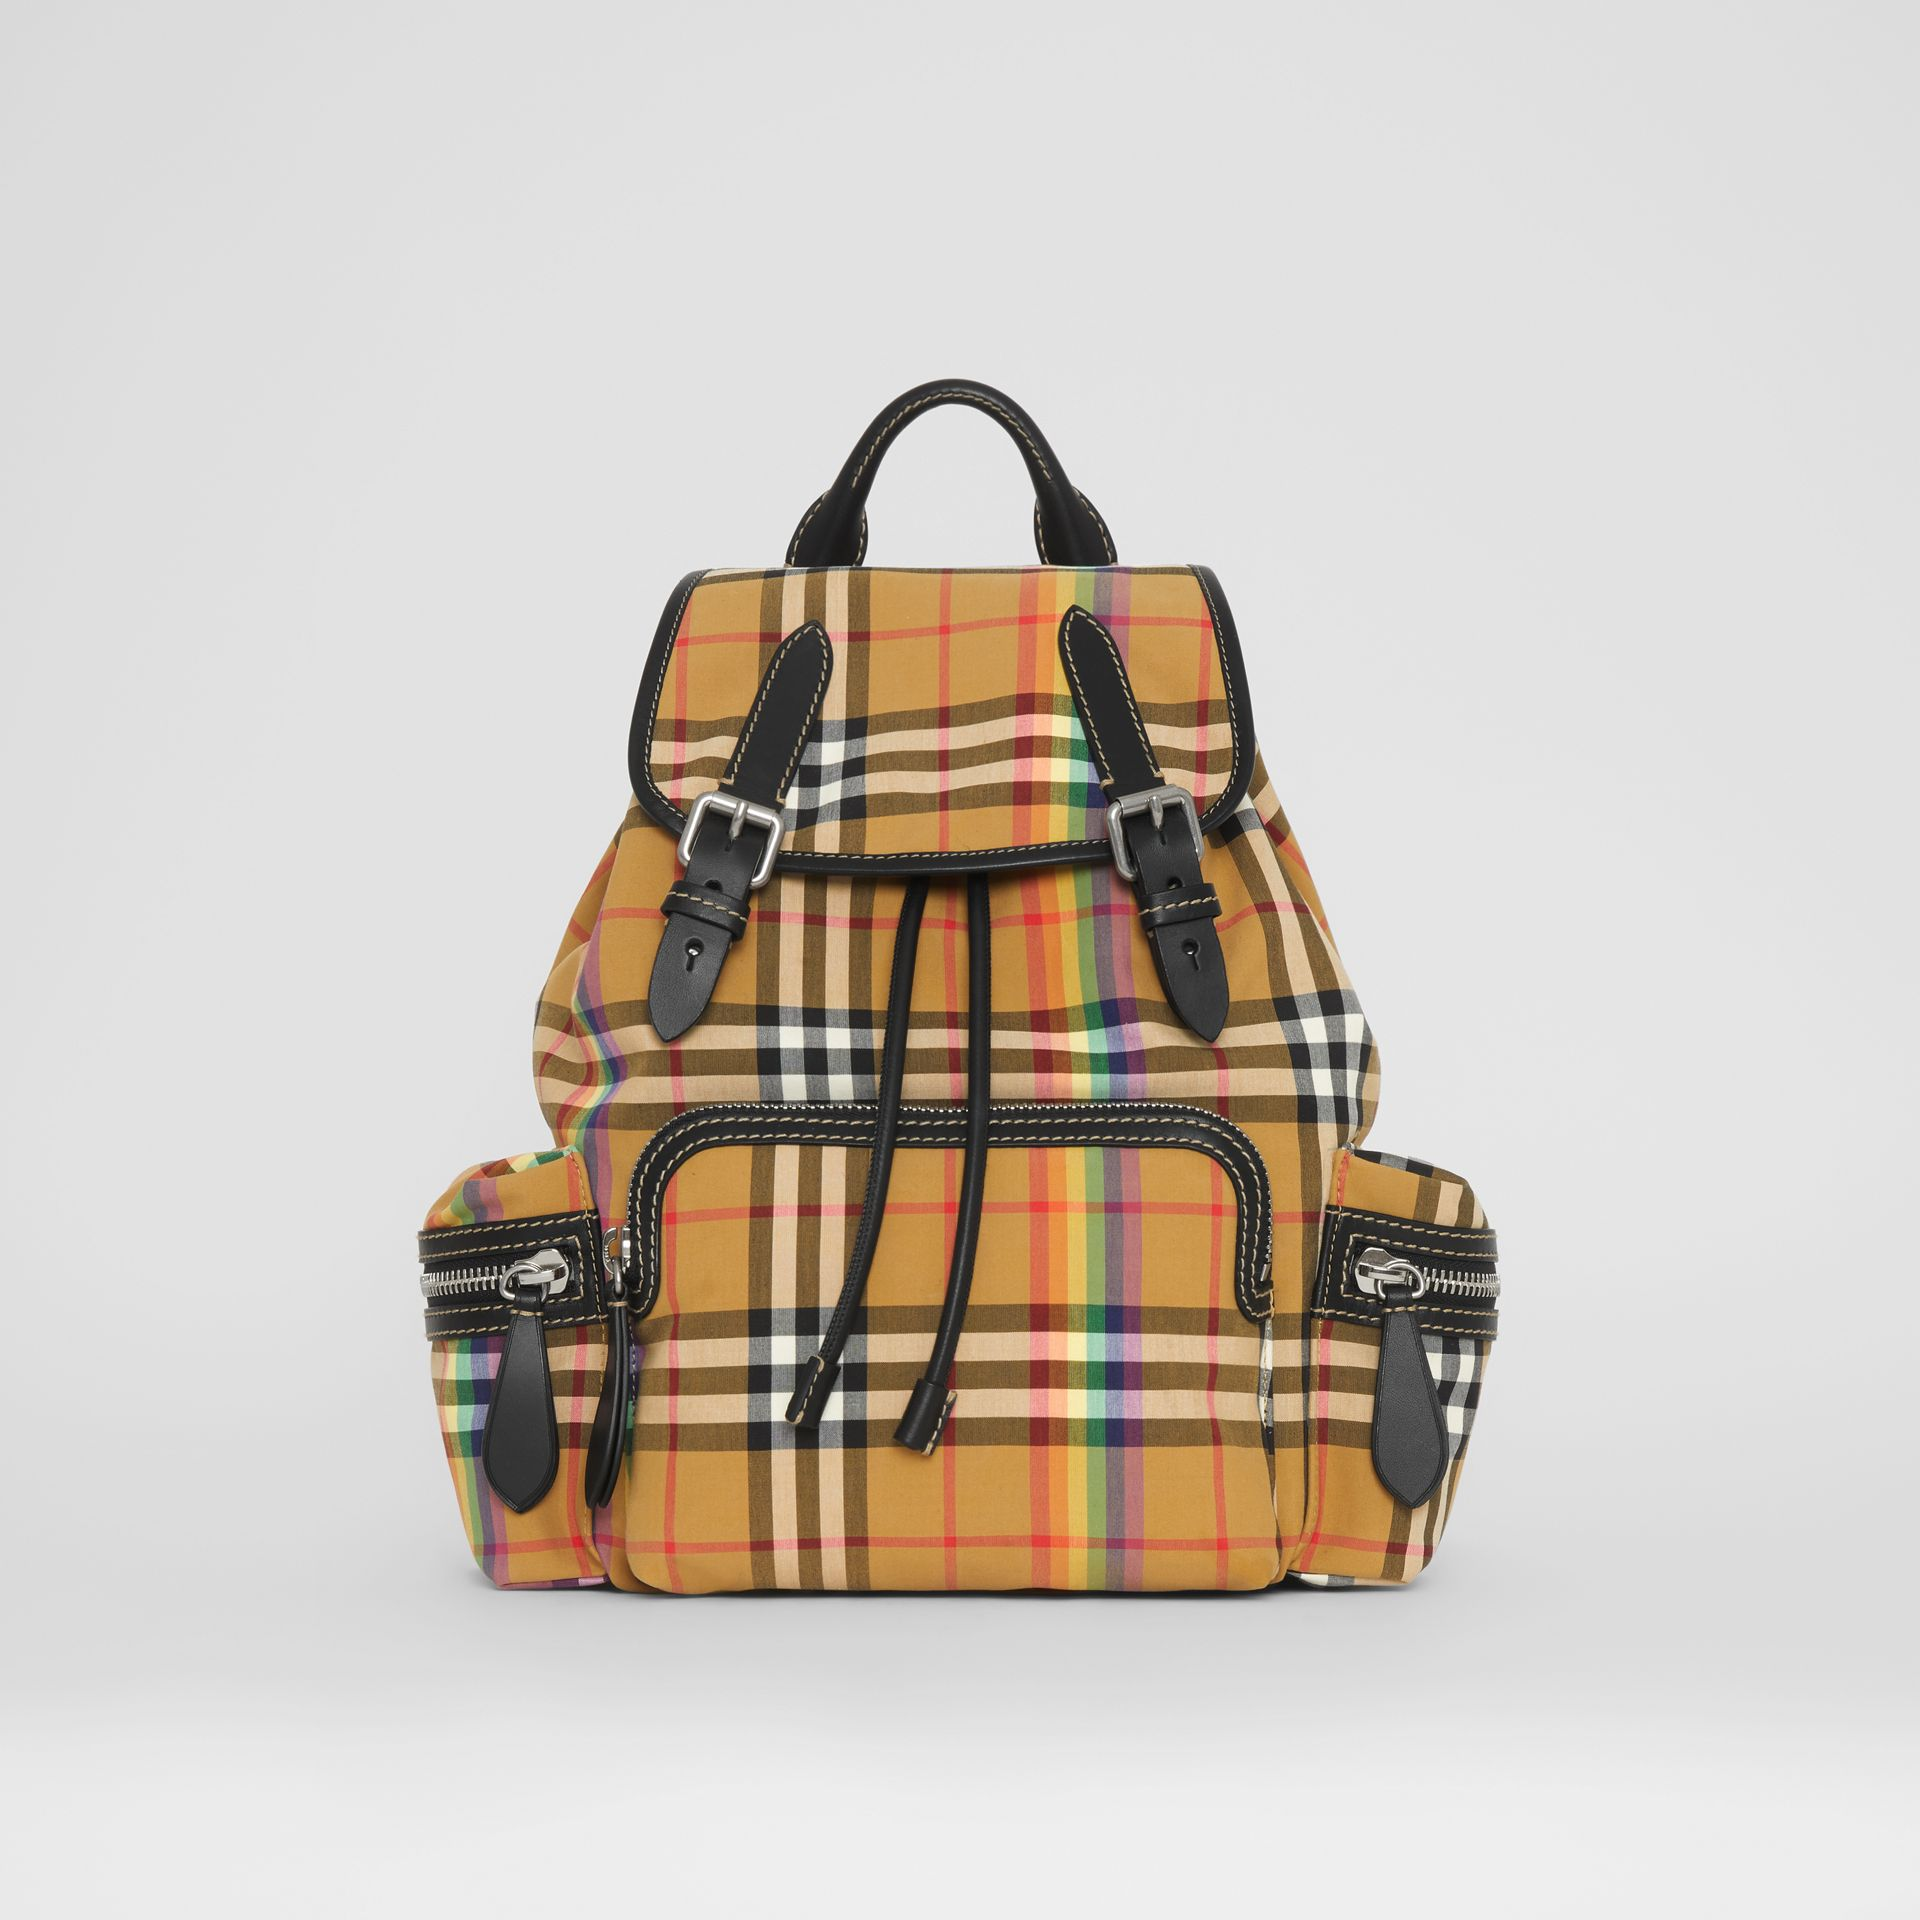 Sac The Rucksack moyen à motif Rainbow Vintage check (Jaune Antique) - Femme | Burberry - photo de la galerie 0